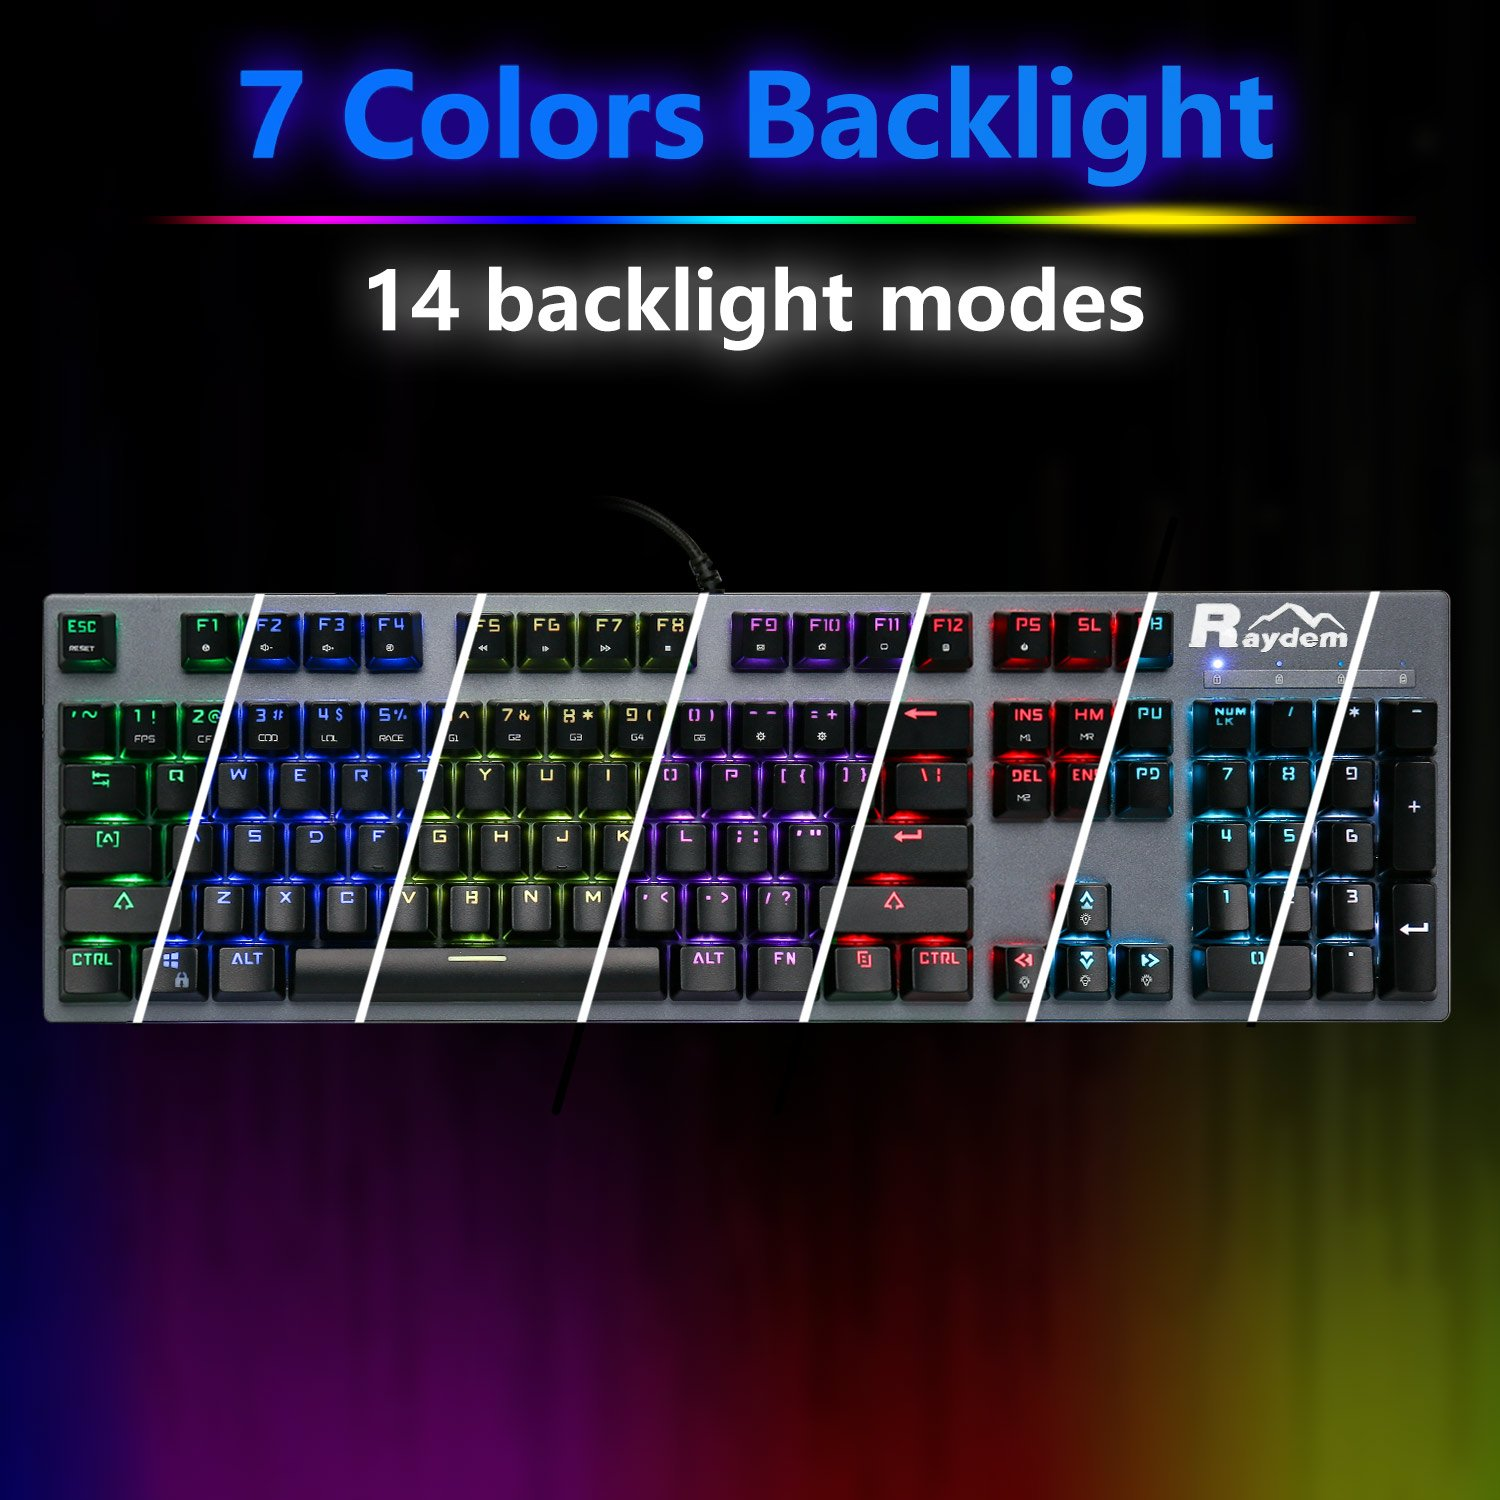 Raydem RGB Mechanical Keyboard with Blue Switches, 16.8 Million RGB Backlit Mechanical Gaming Keyboard with 14 LED Backlit Modes 104-key Anti-Ghost Aluminum Plate, Non-Fading UV Coating for PC & Mac by Raydem (Image #6)